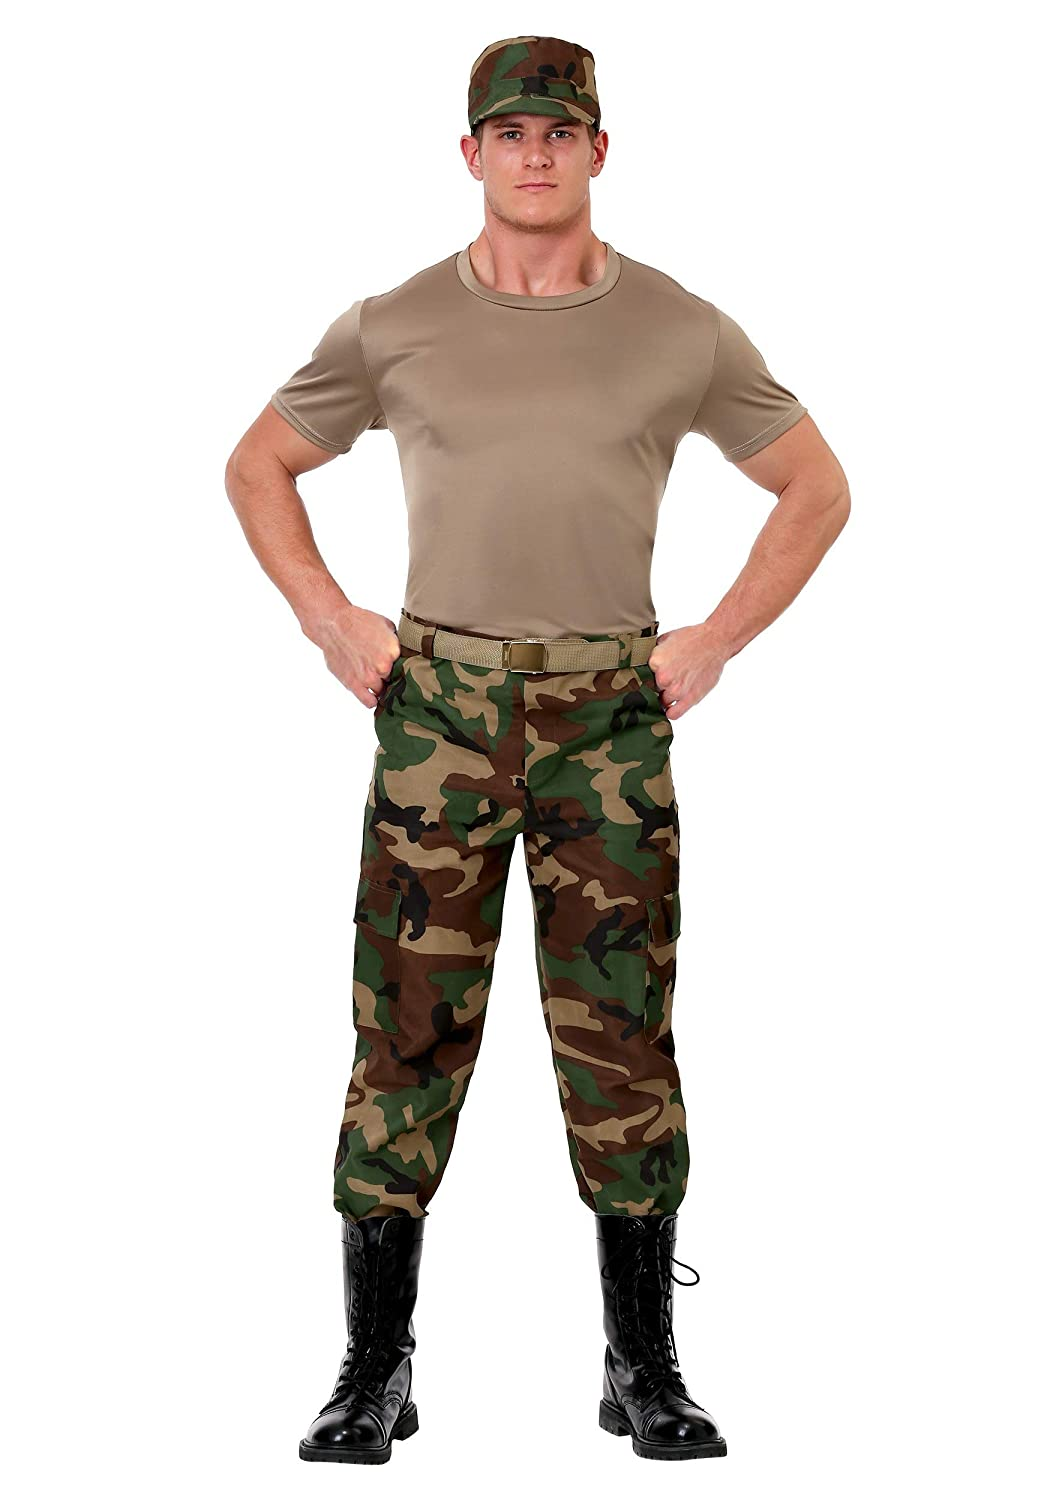 Large Men's Camo Soldier Costume Large